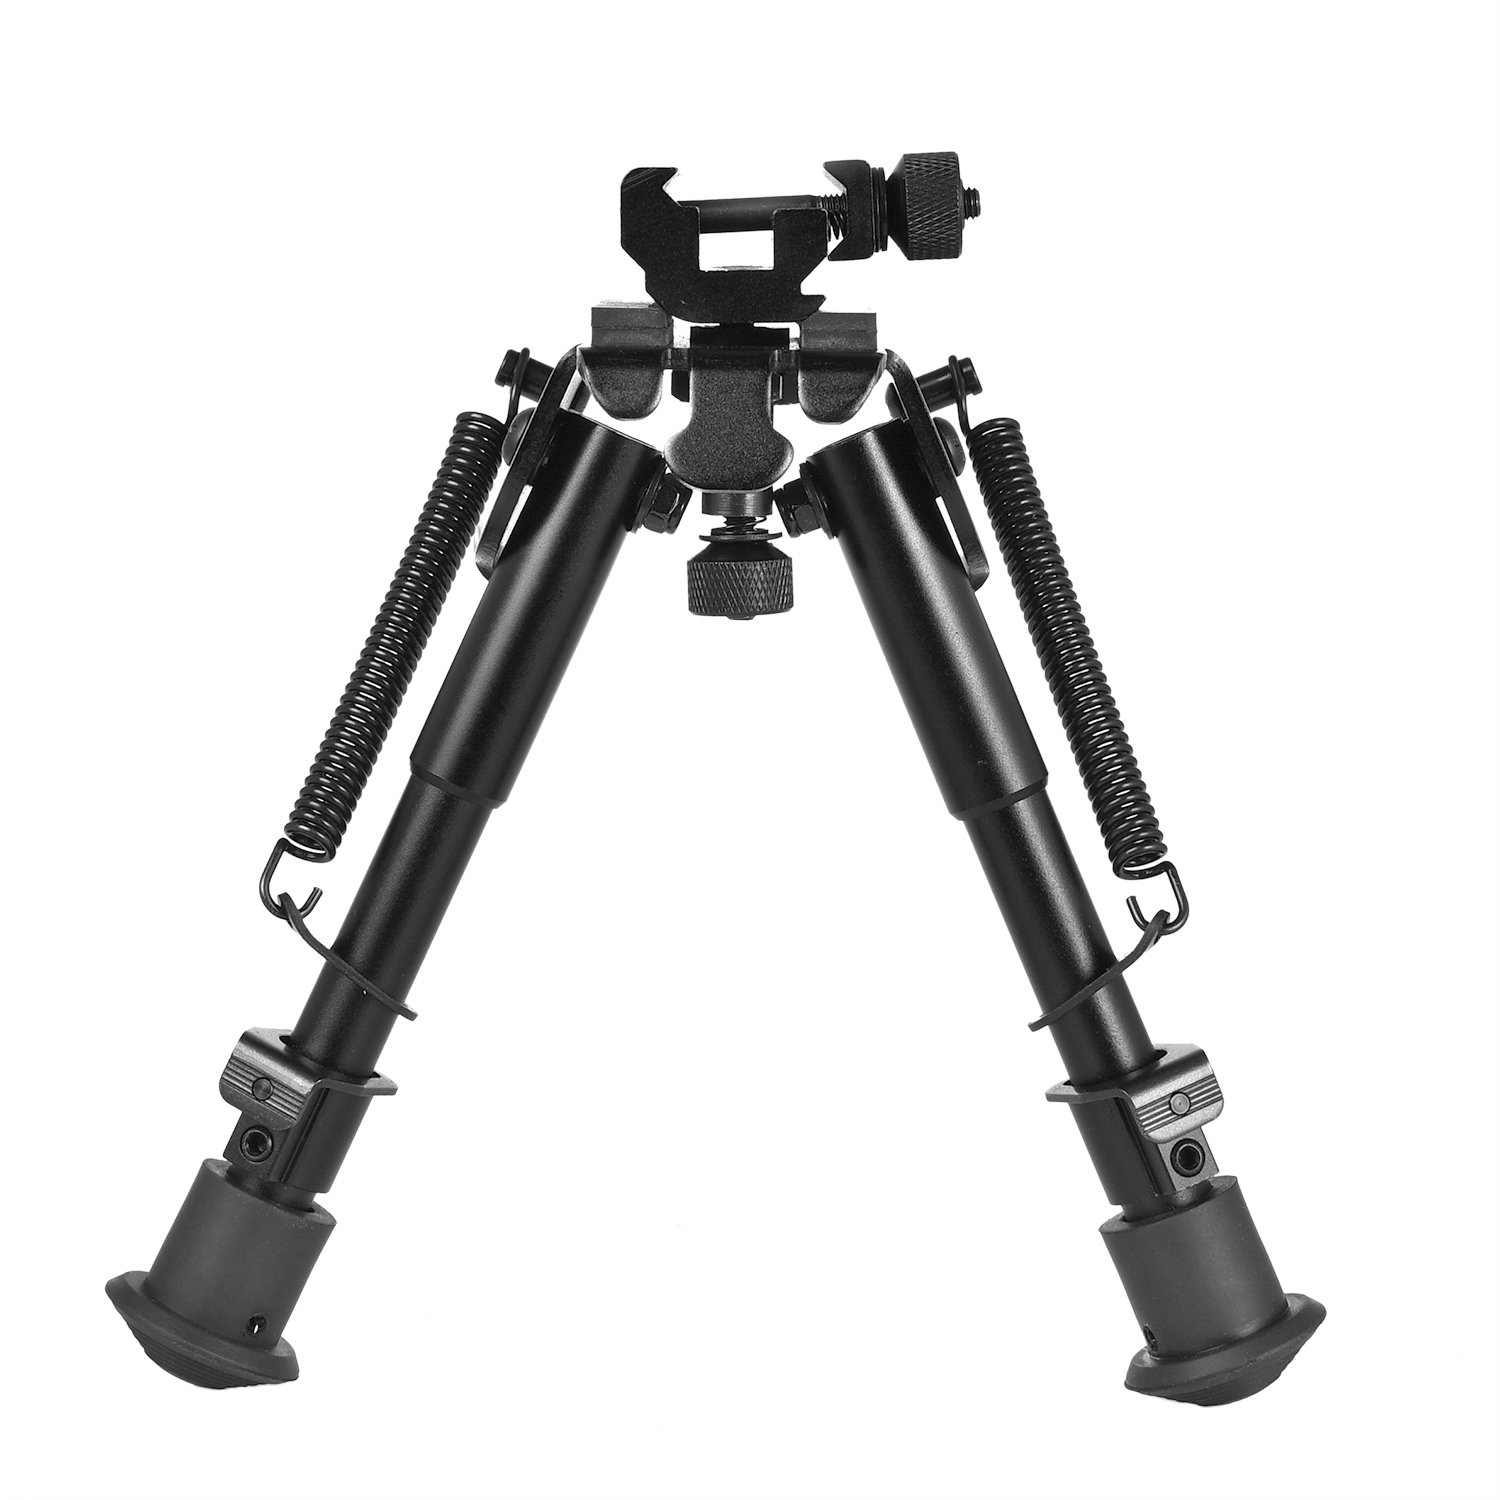 CVLIFE 6-9 Inches Tactical Rifle Bipod Adjustable Spring Return with 360 Degree Swivel Adapter by CVLIFE